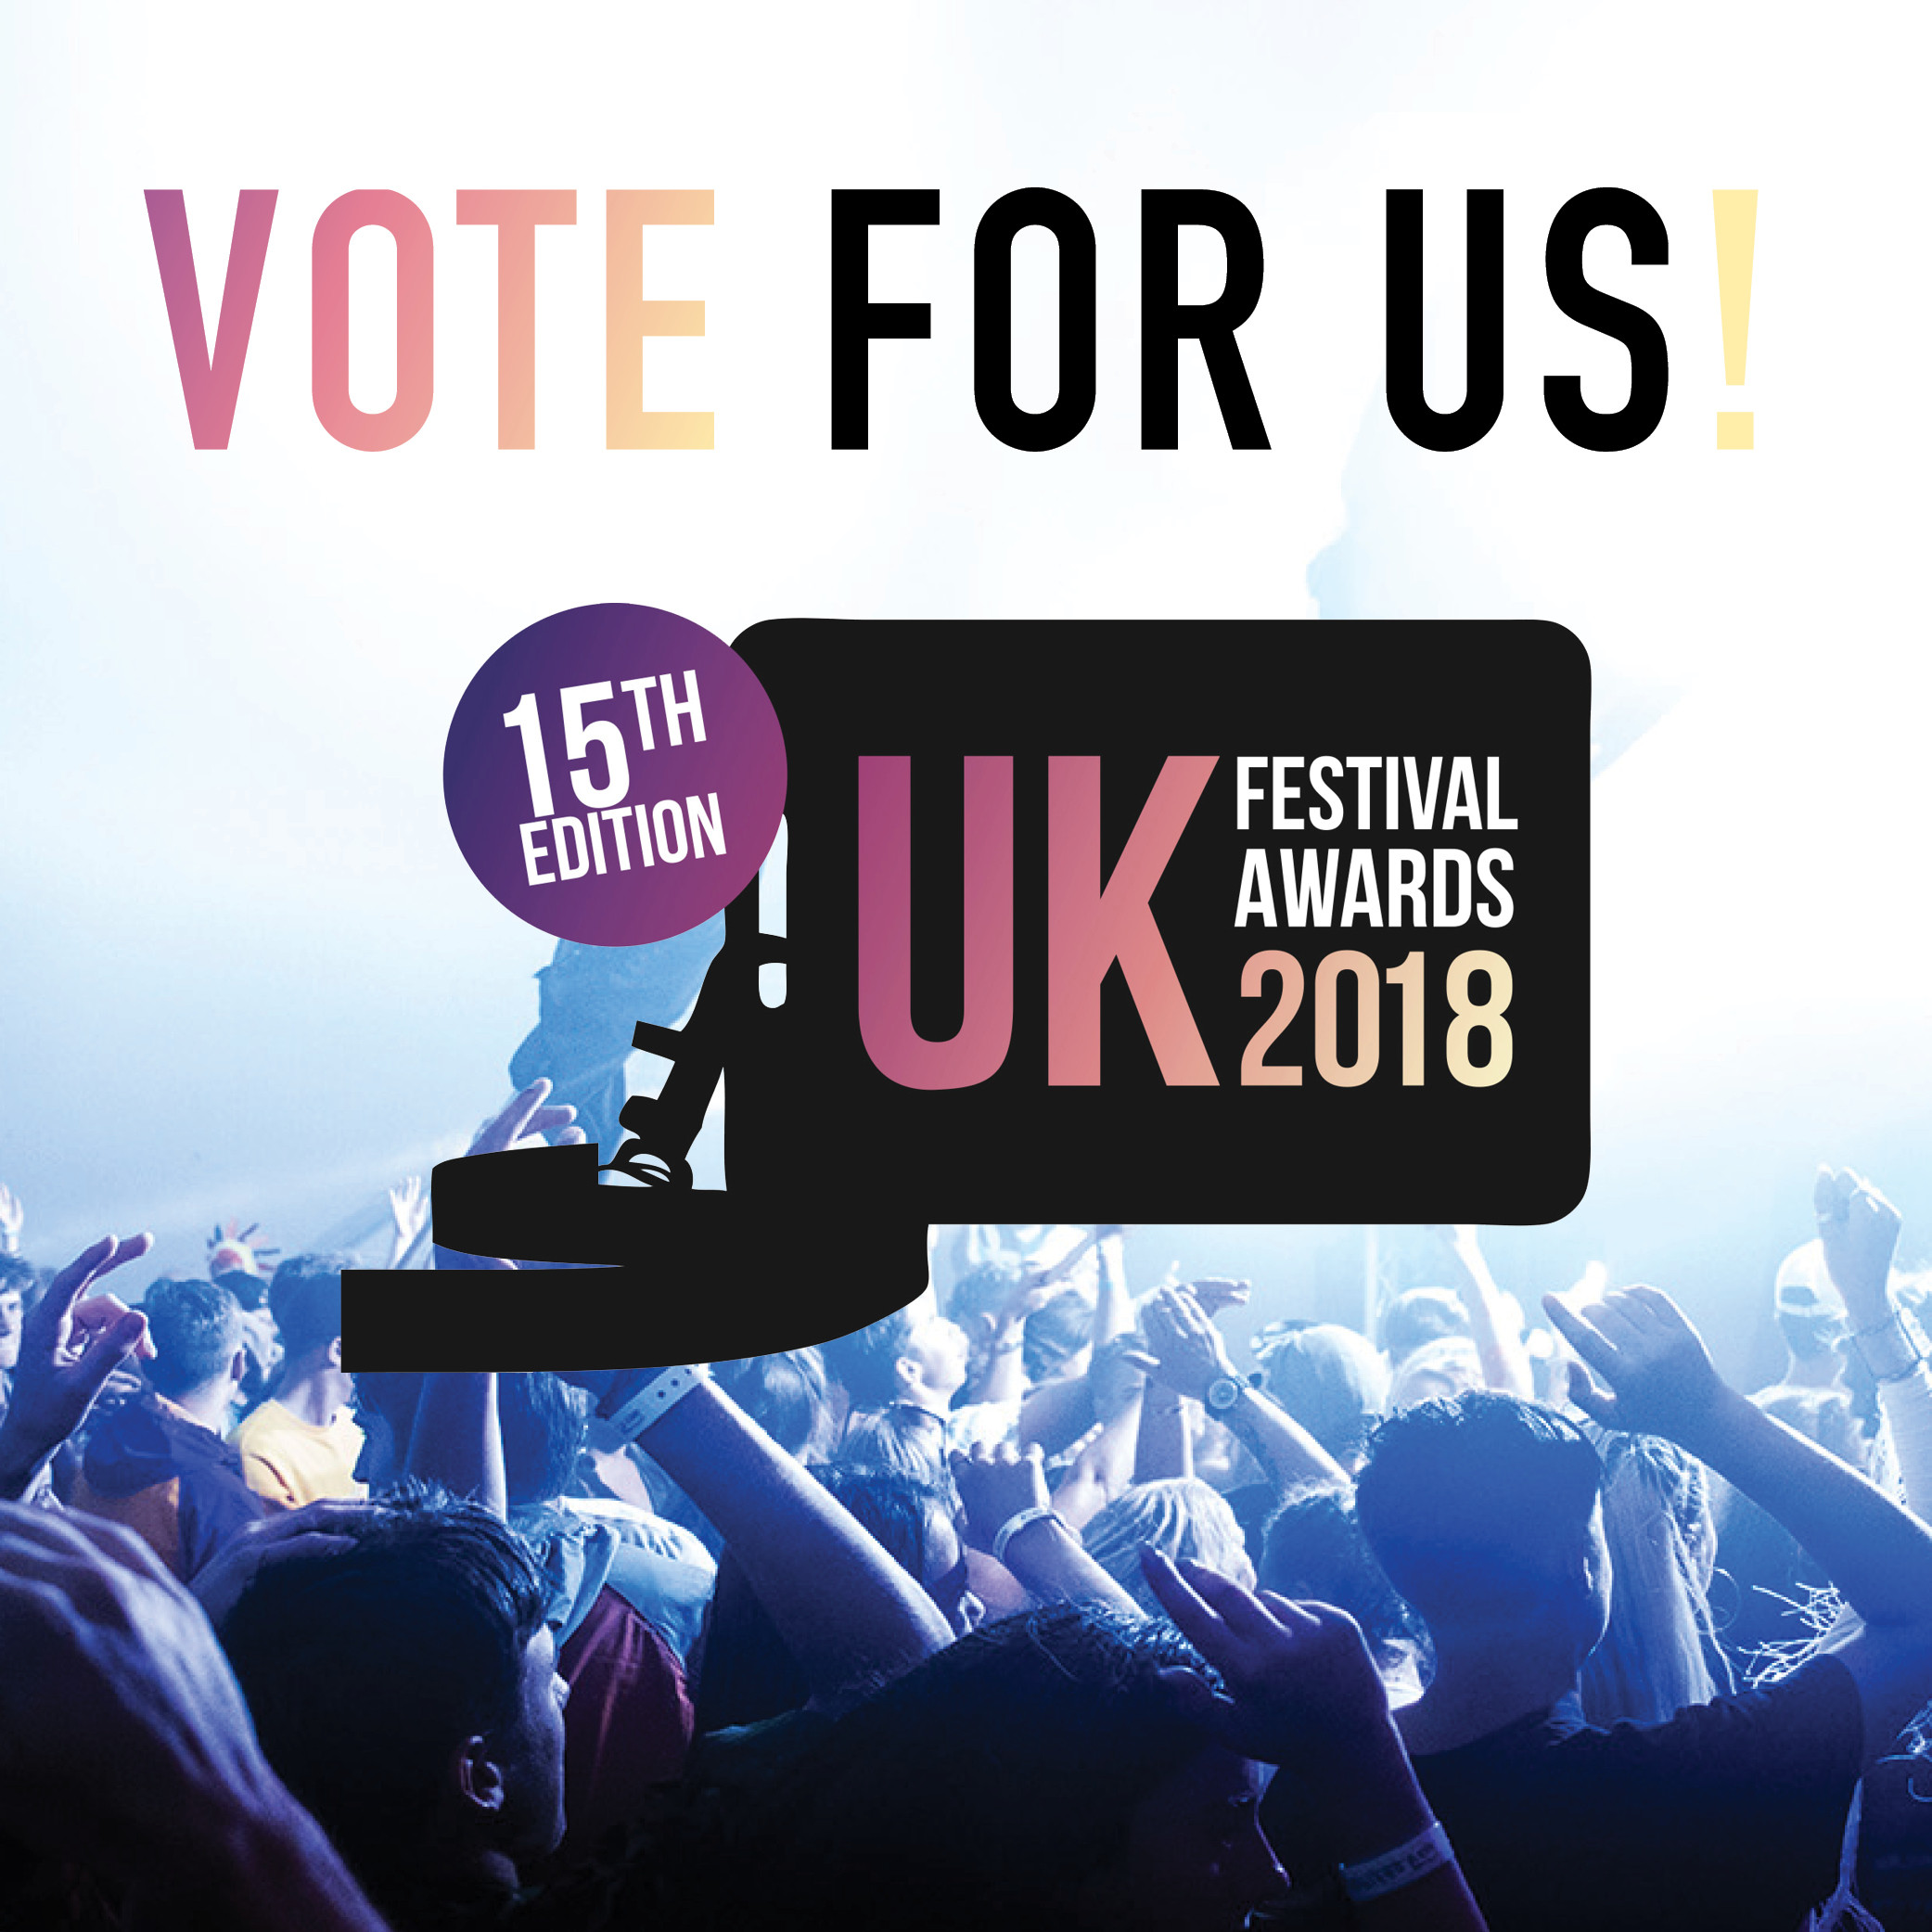 UKfestivalawards_square_new3.jpg